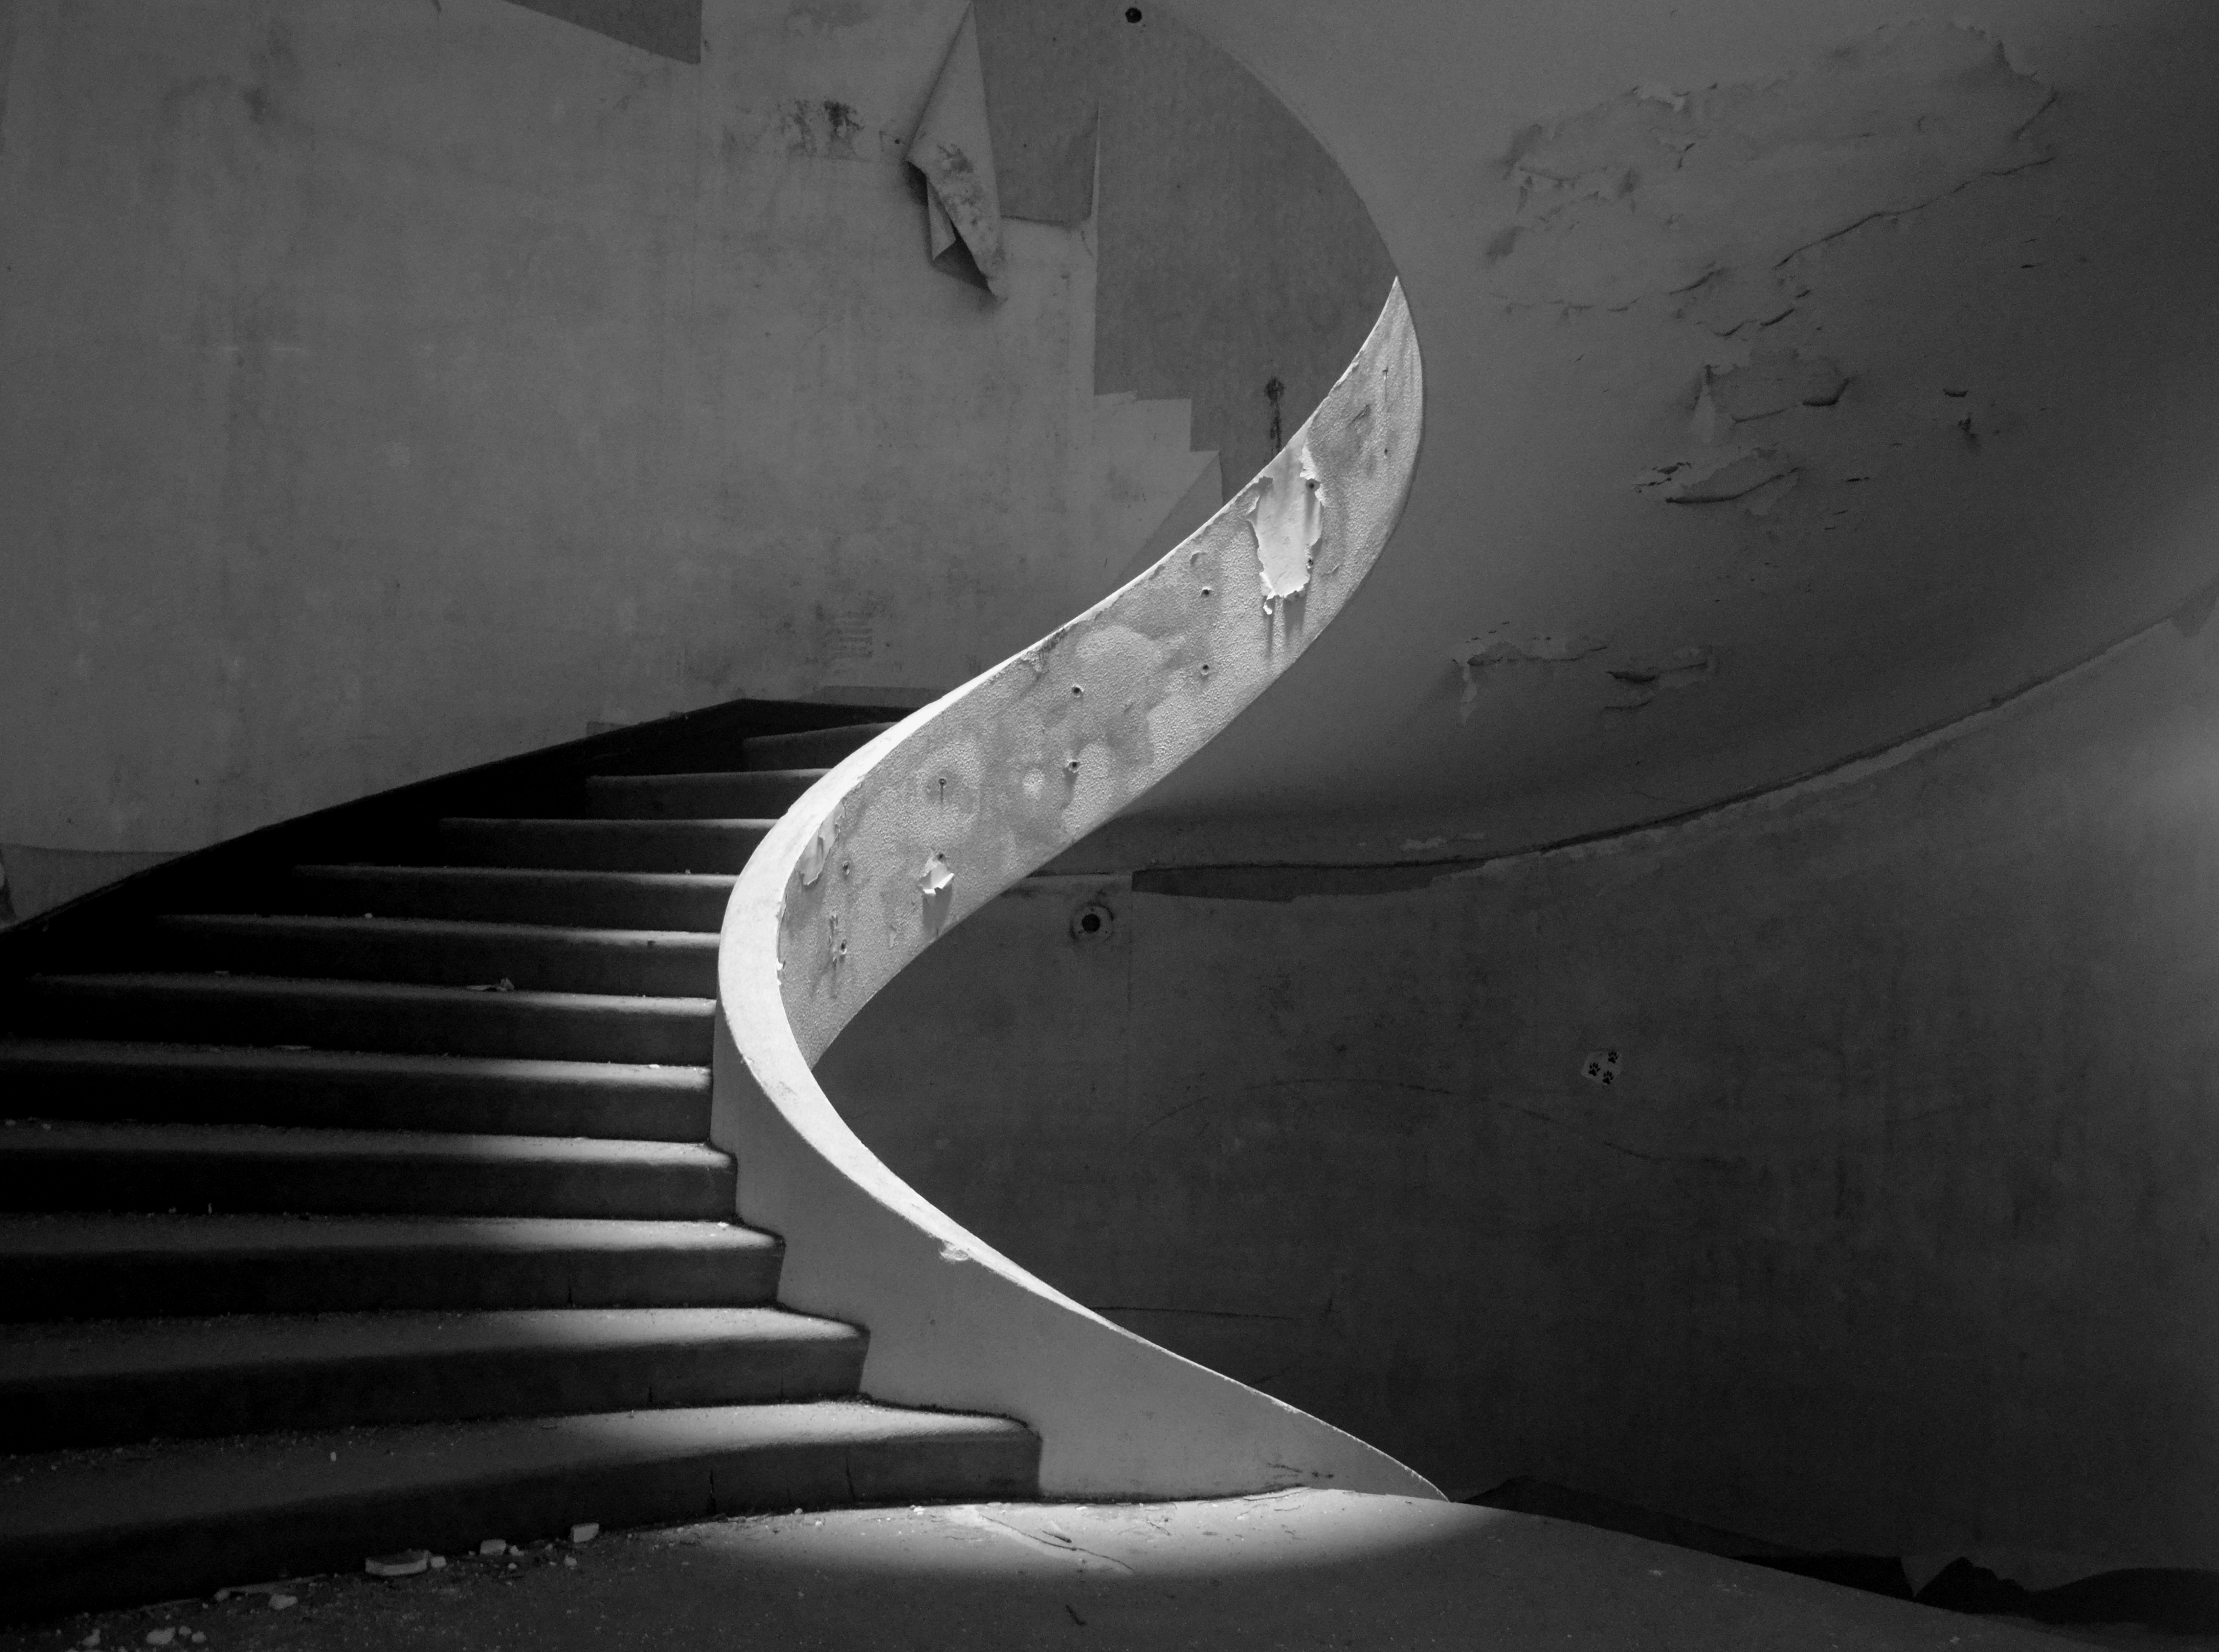 File:Stairs in the Monte Palace hotel, azores sao miguel ...